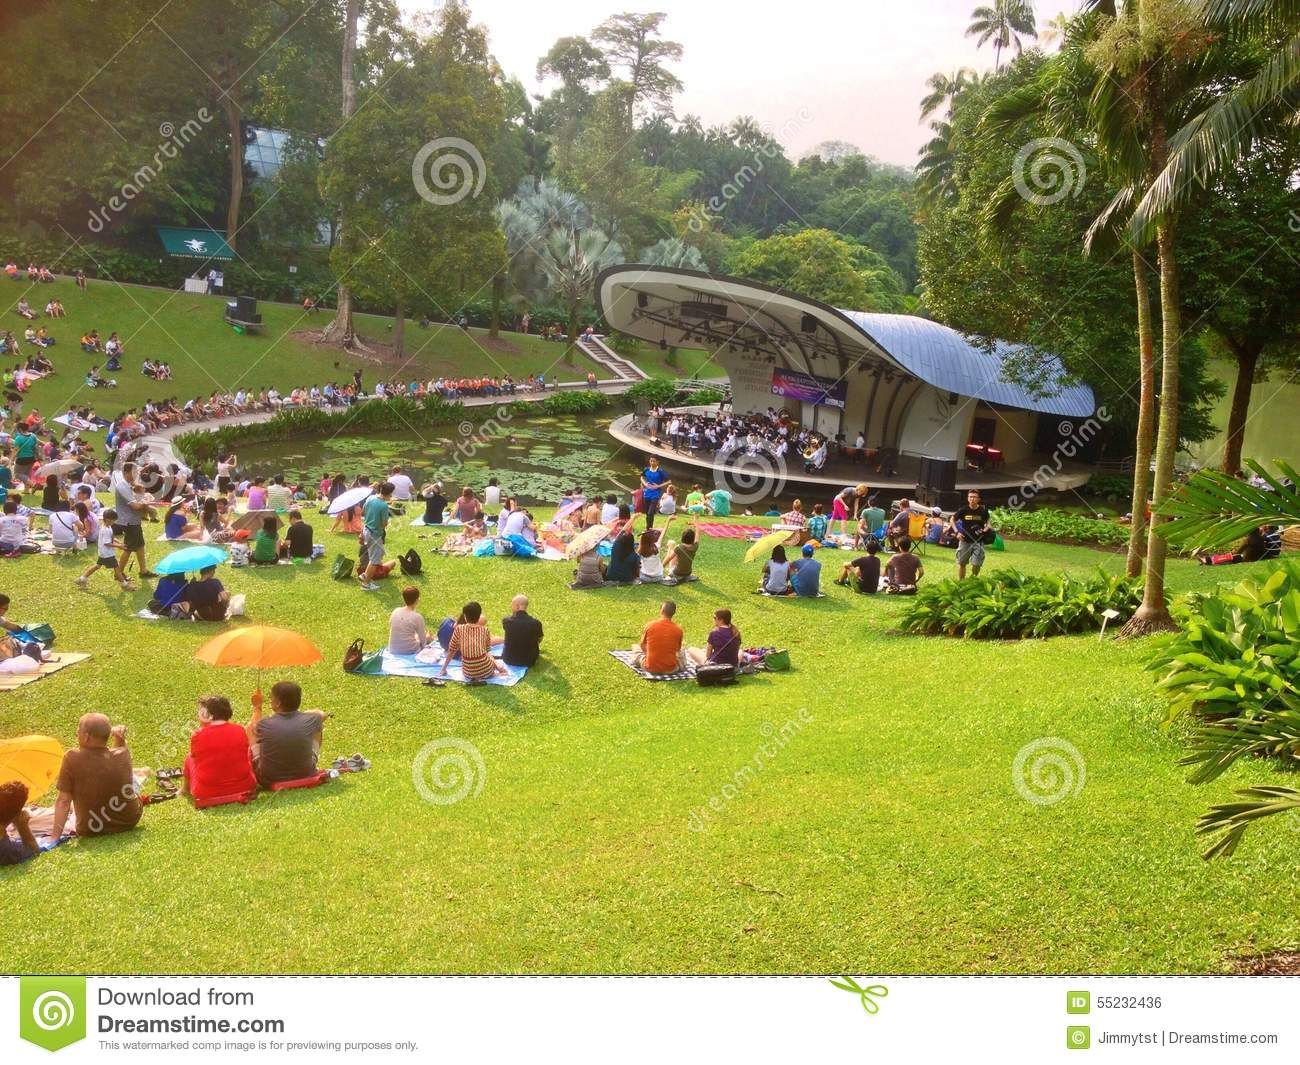 Outdoor concert botanic gardens singapore editorial for Au jardin singapore botanic gardens